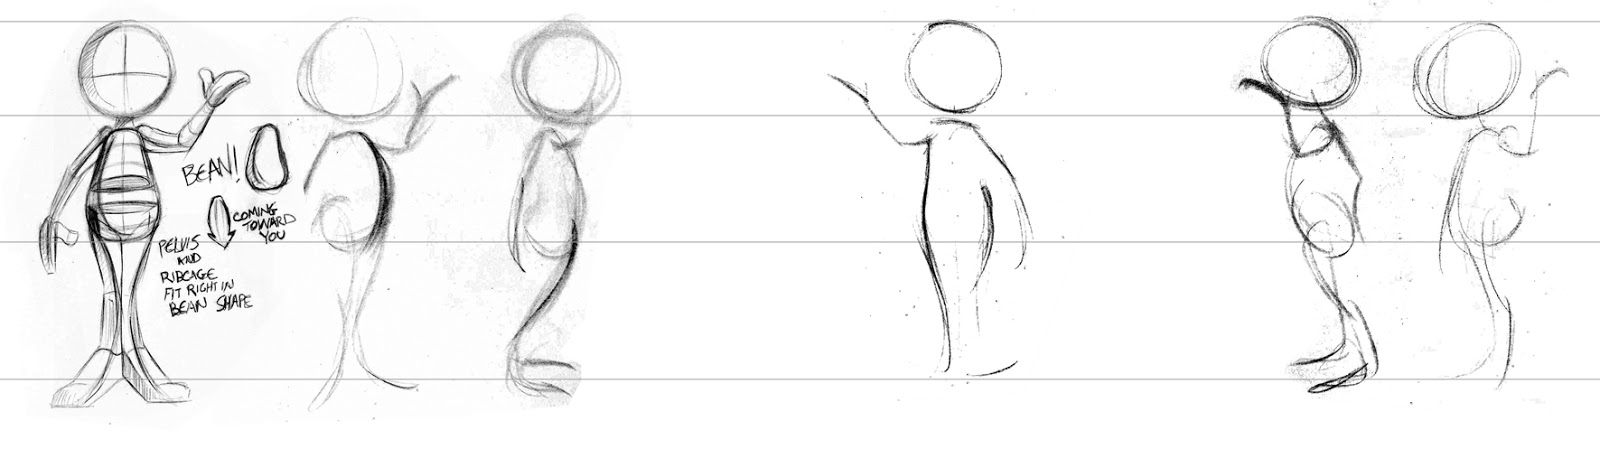 SonjebasaLand: How to Draw A Turn-around